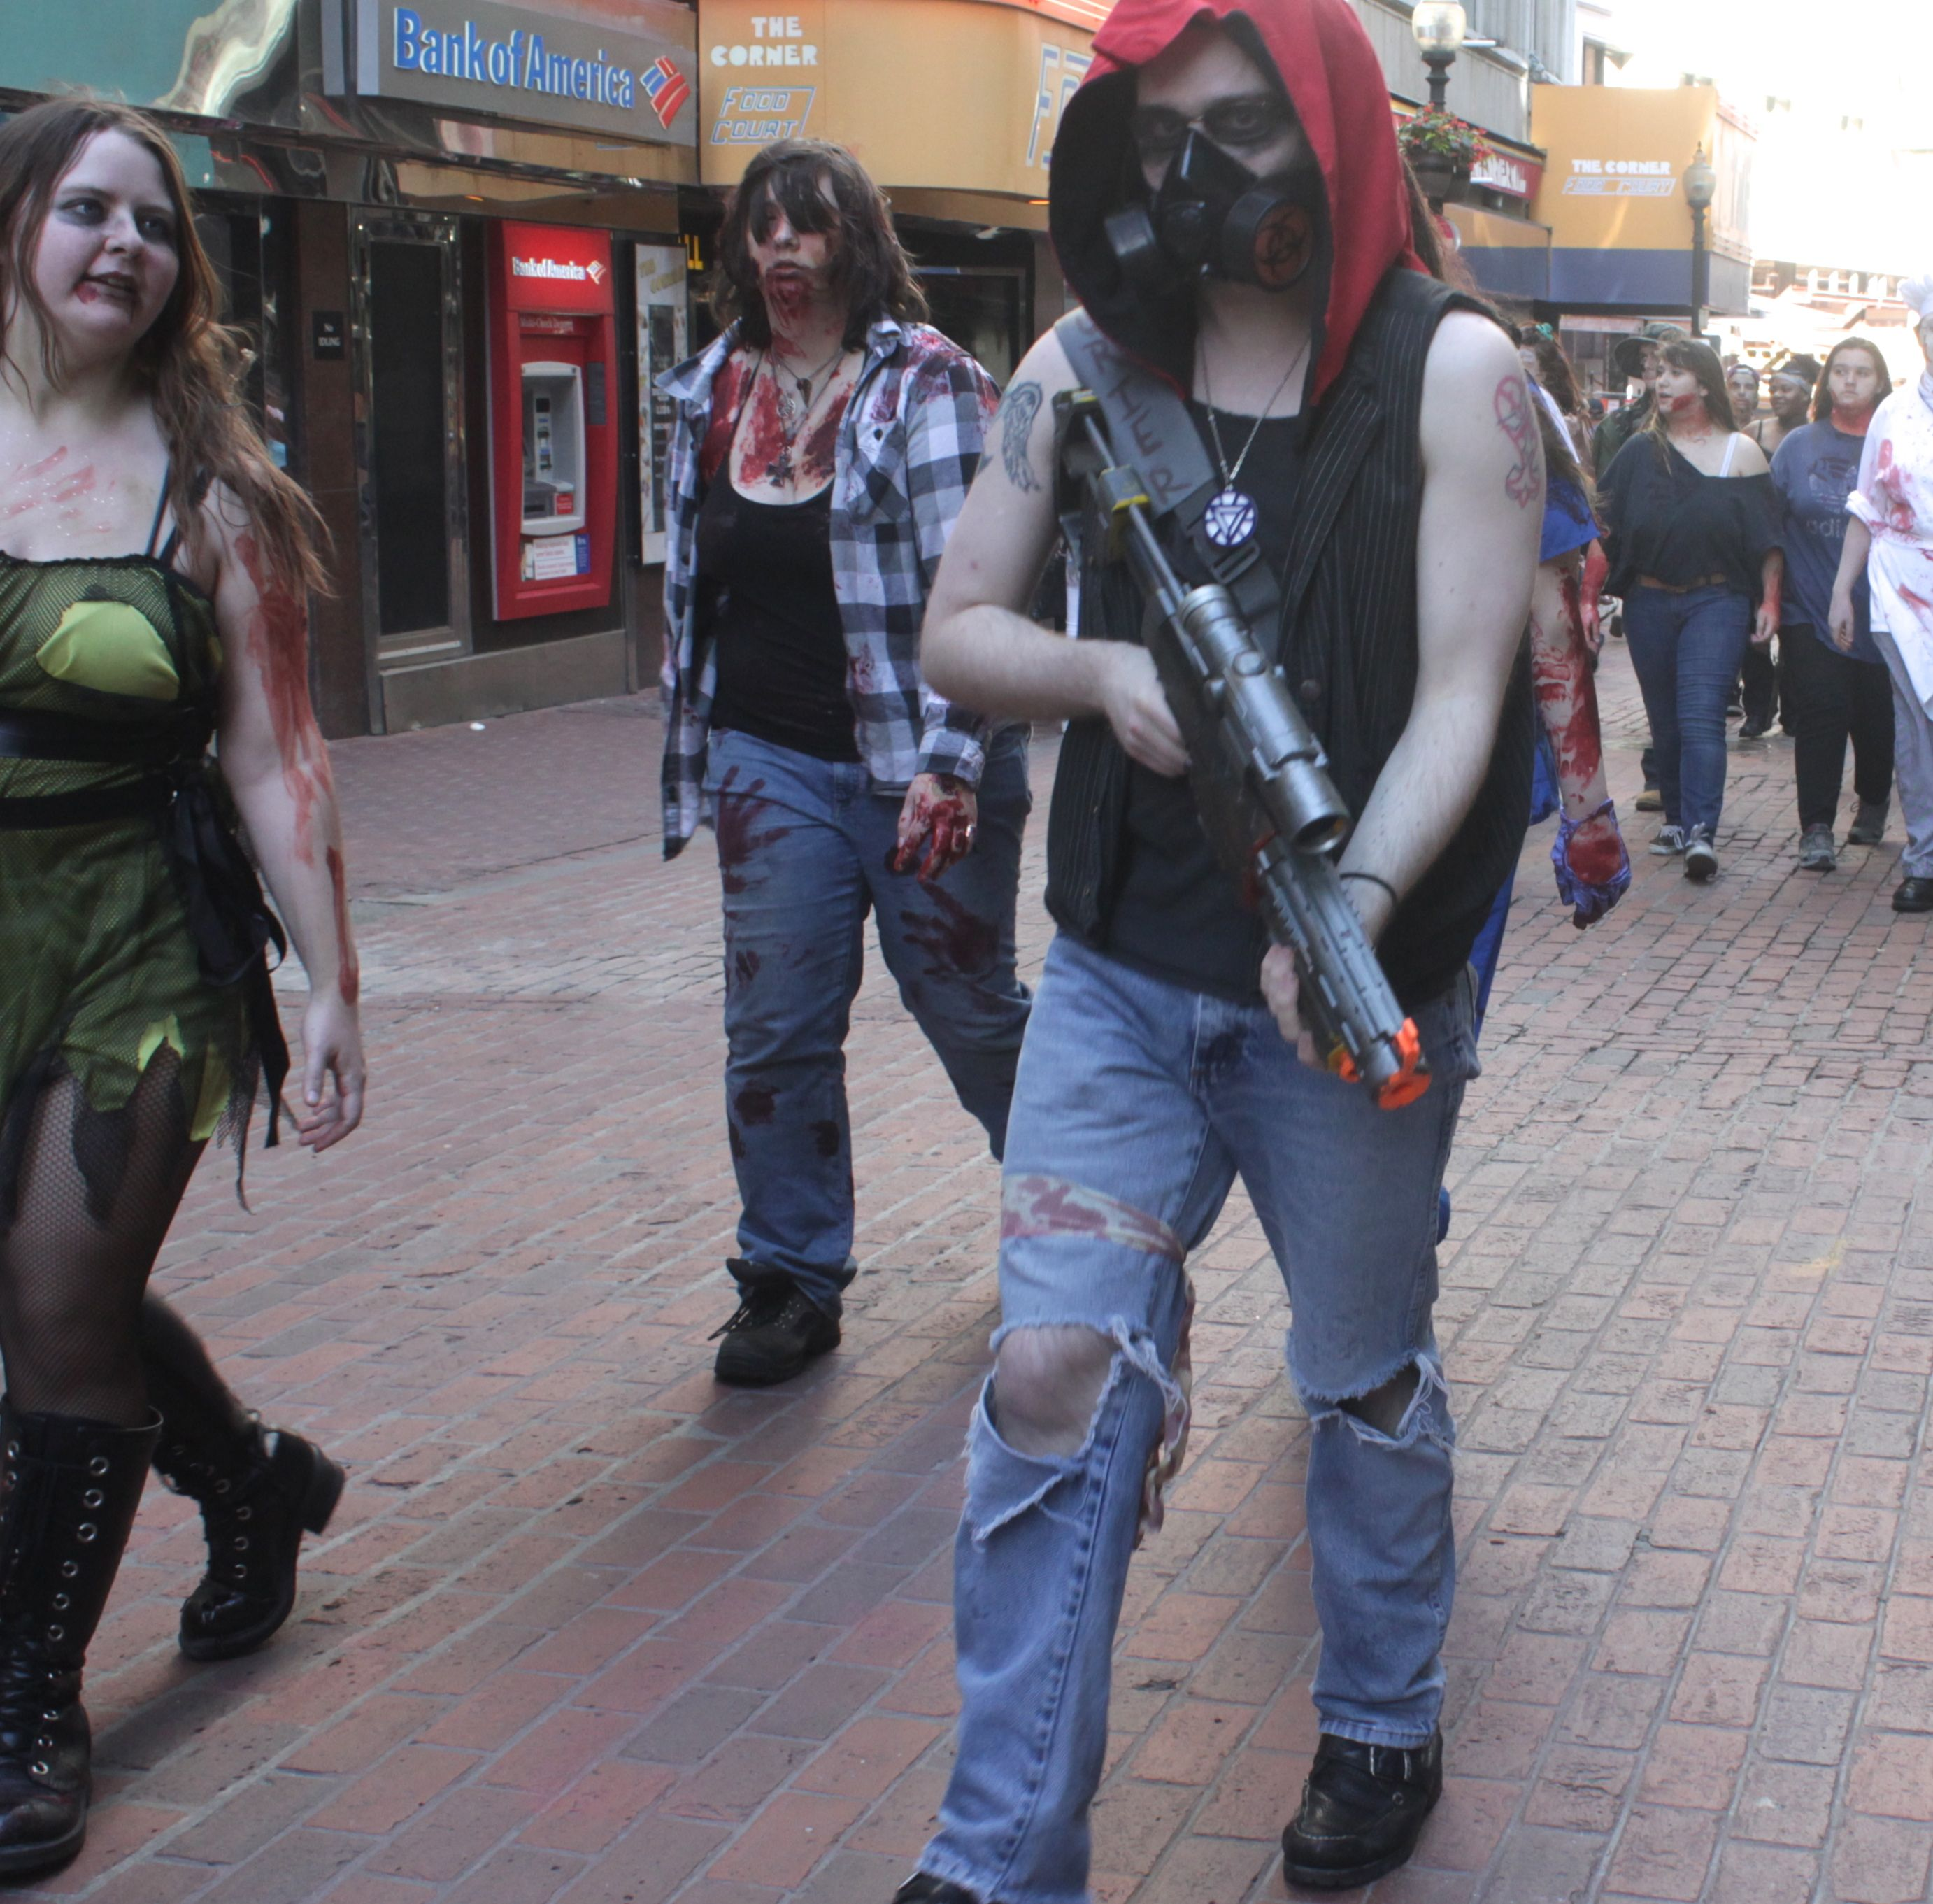 look out zombie apocalypse to your left and your right wrong